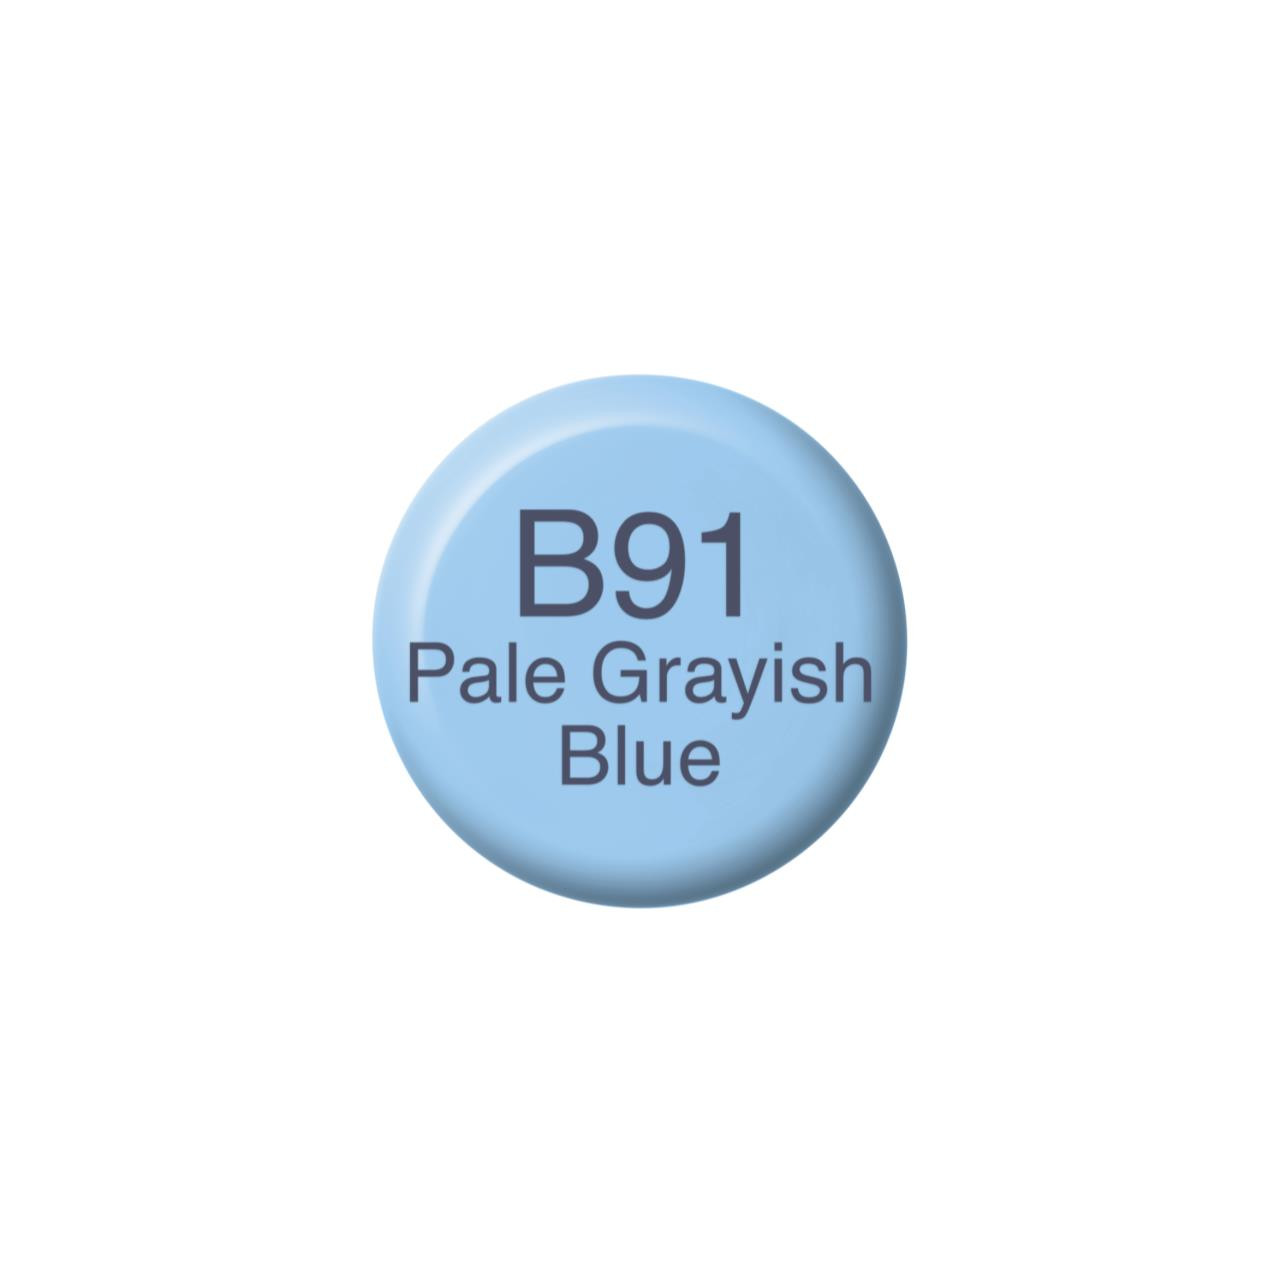 B91 Pale Grayish Blue, Copic Ink - 4511338056103